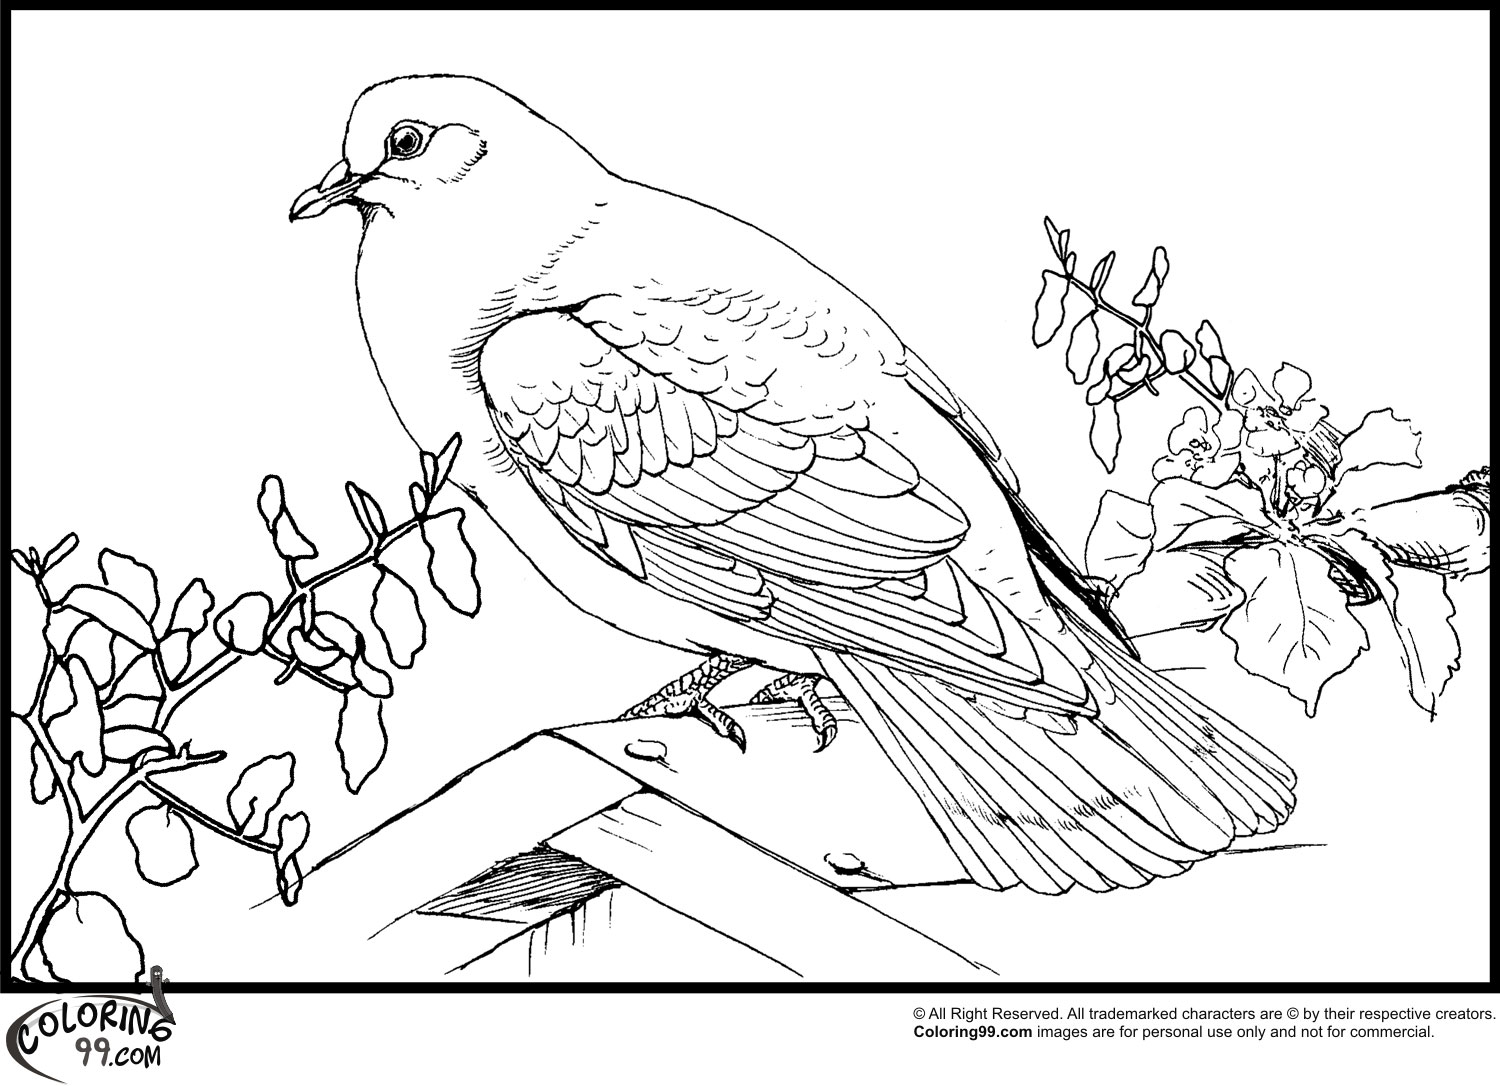 dove bird coloring pages dove coloring pages download and print dove coloring pages dove bird coloring pages